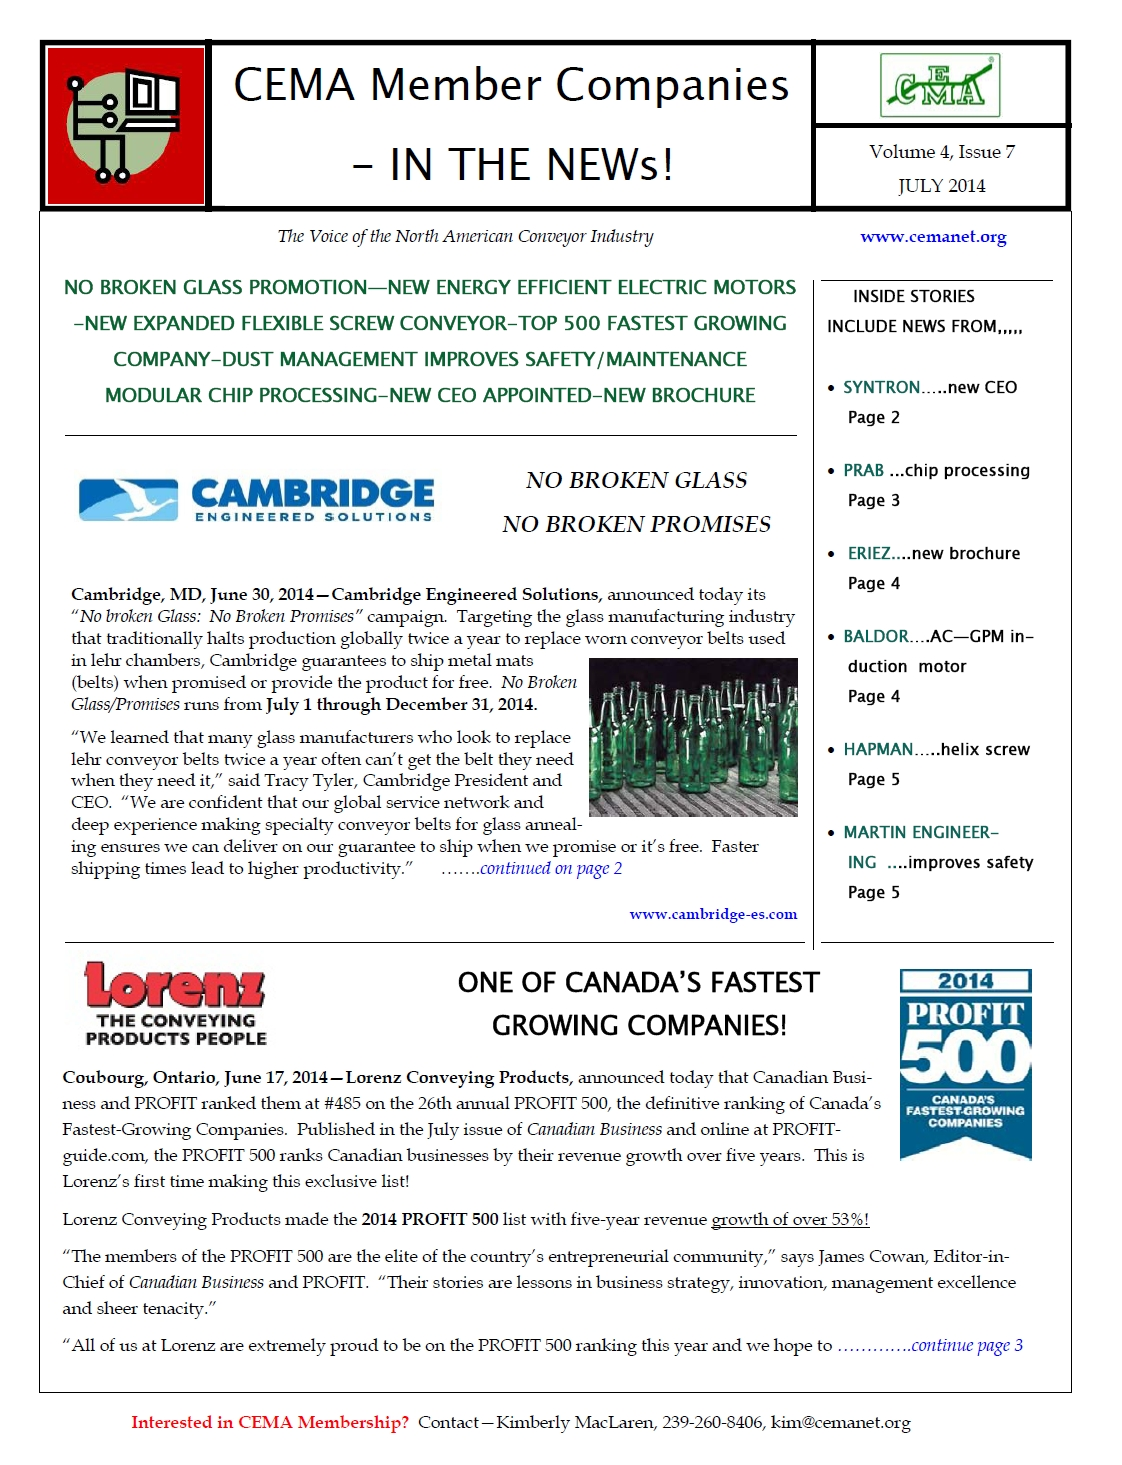 Members, CEMA, newsletters, bulk handling, unit handling, screw conveyors